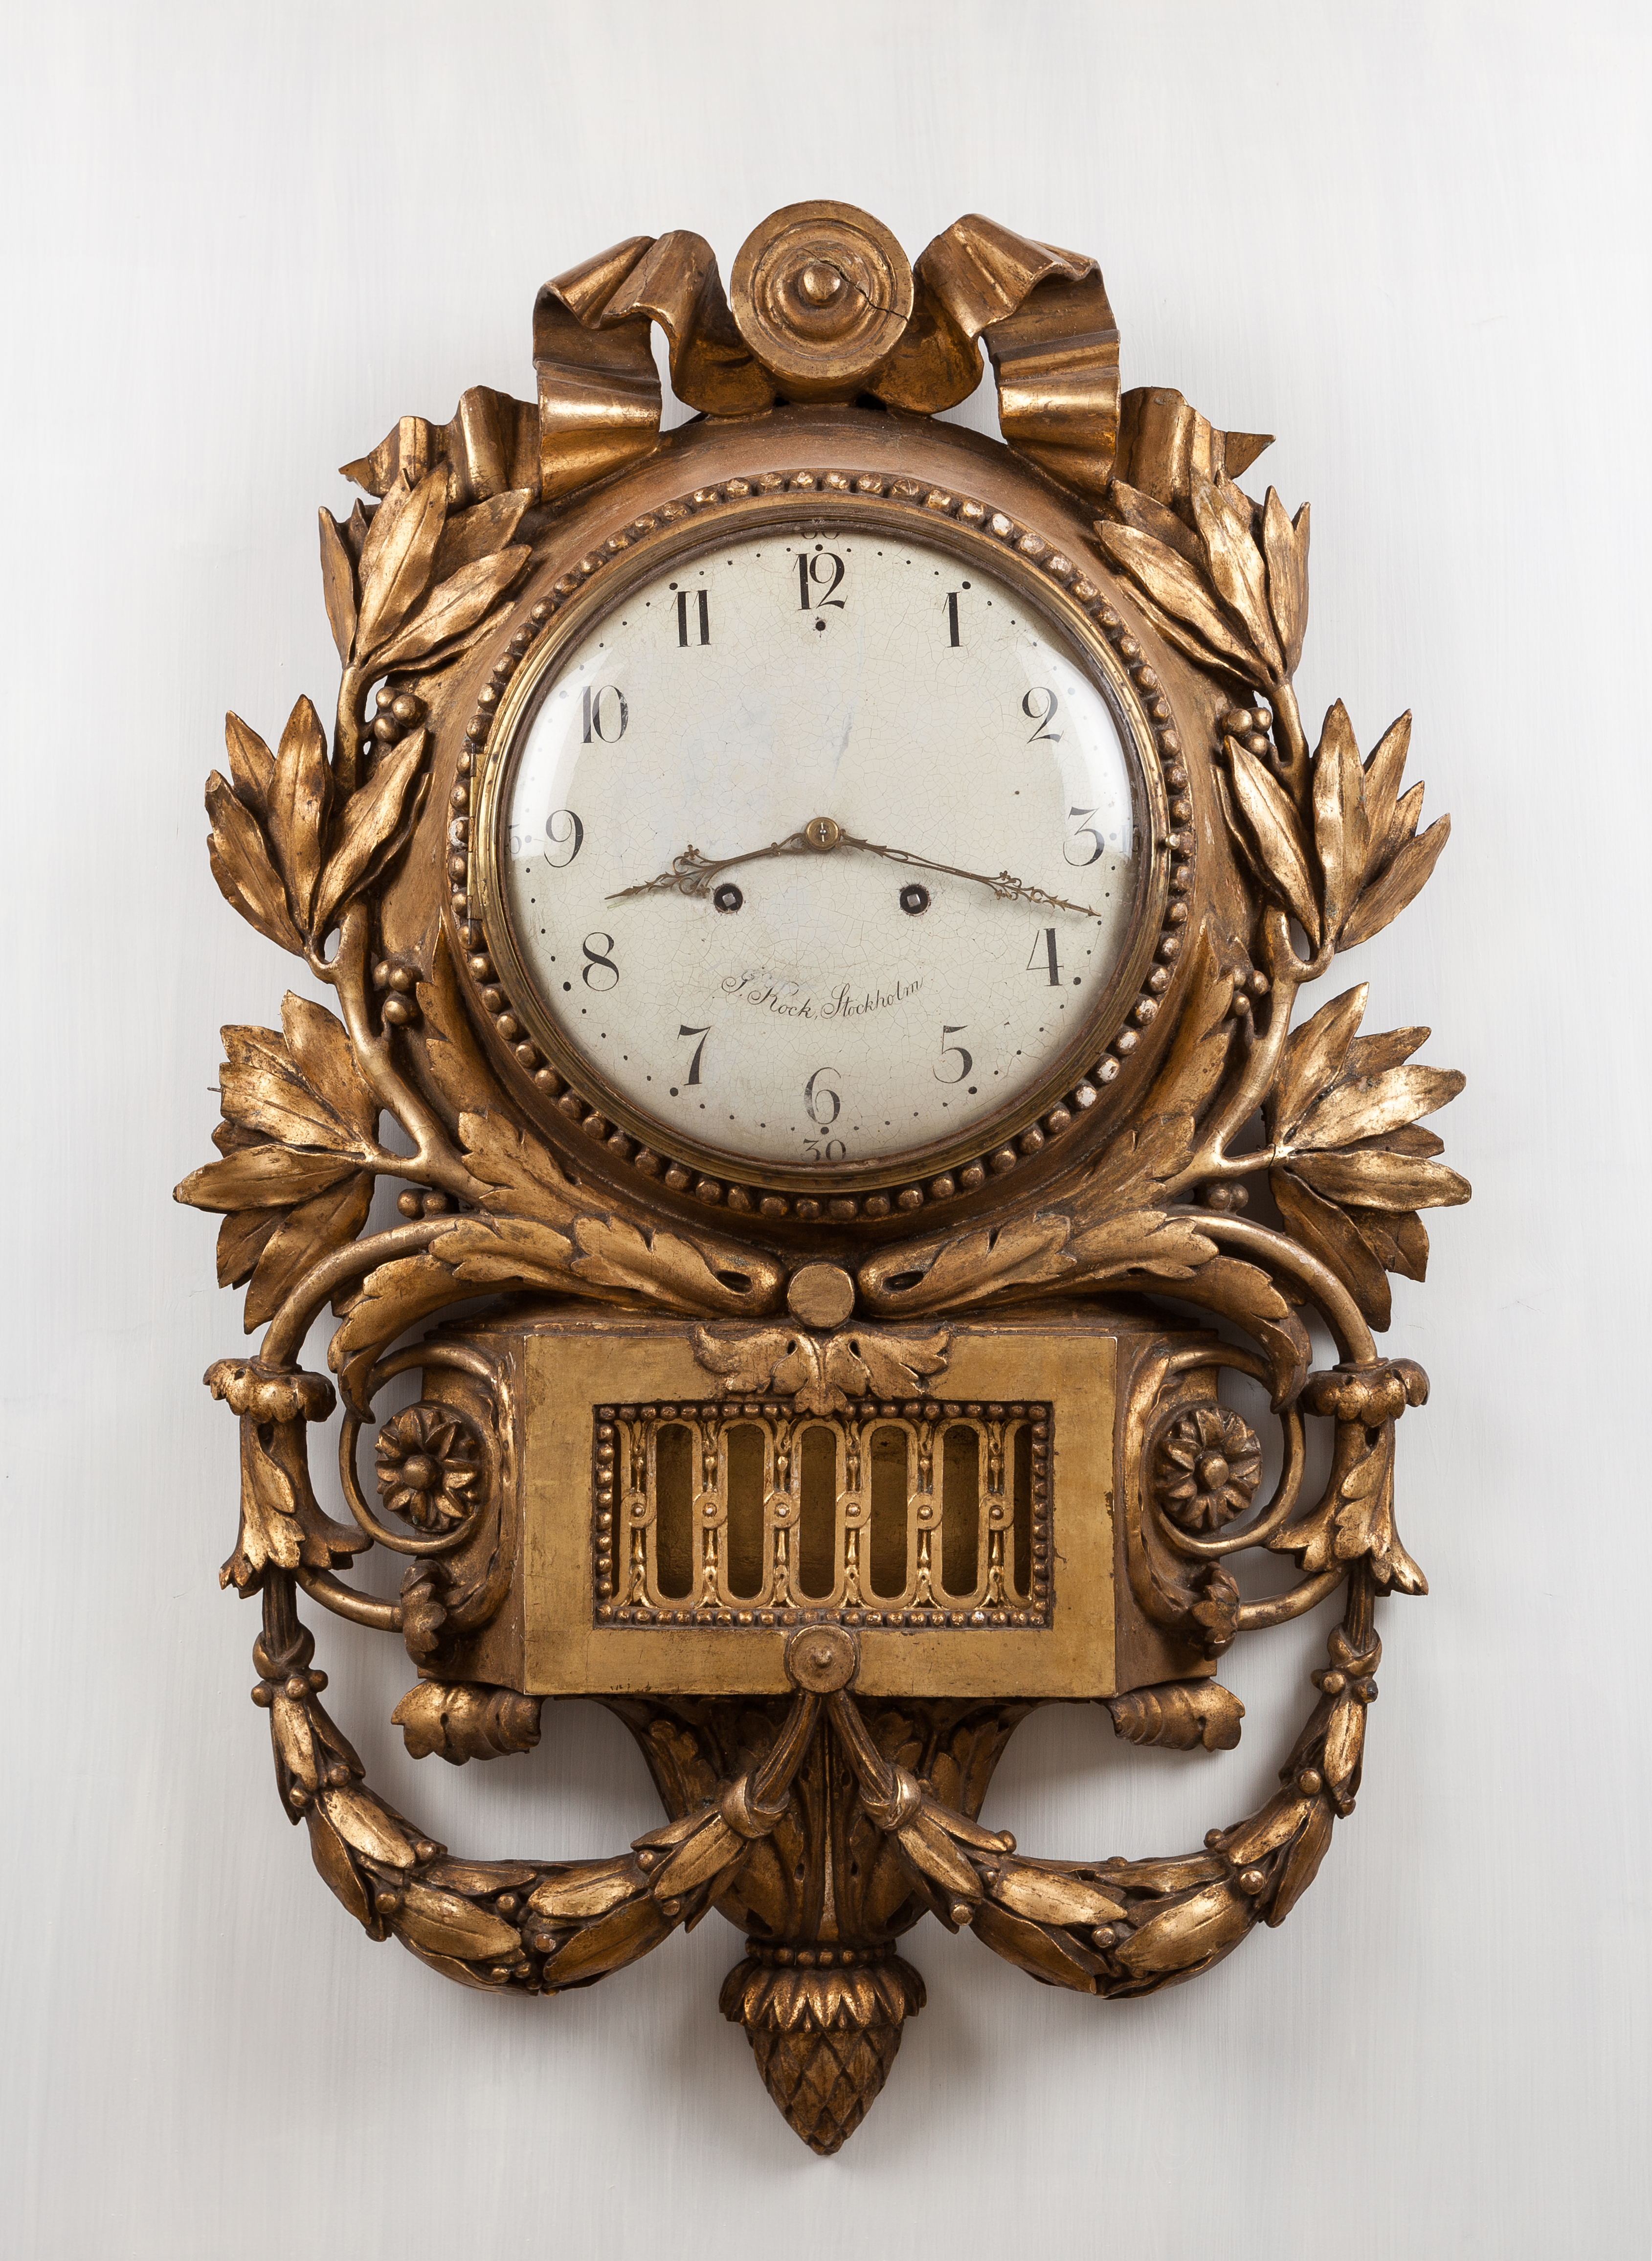 Http Commons Wikimedia Org Wiki File Pendulum Clock By Jacob Kock Antique Furniture Photography Img 0931 Edit Jpg